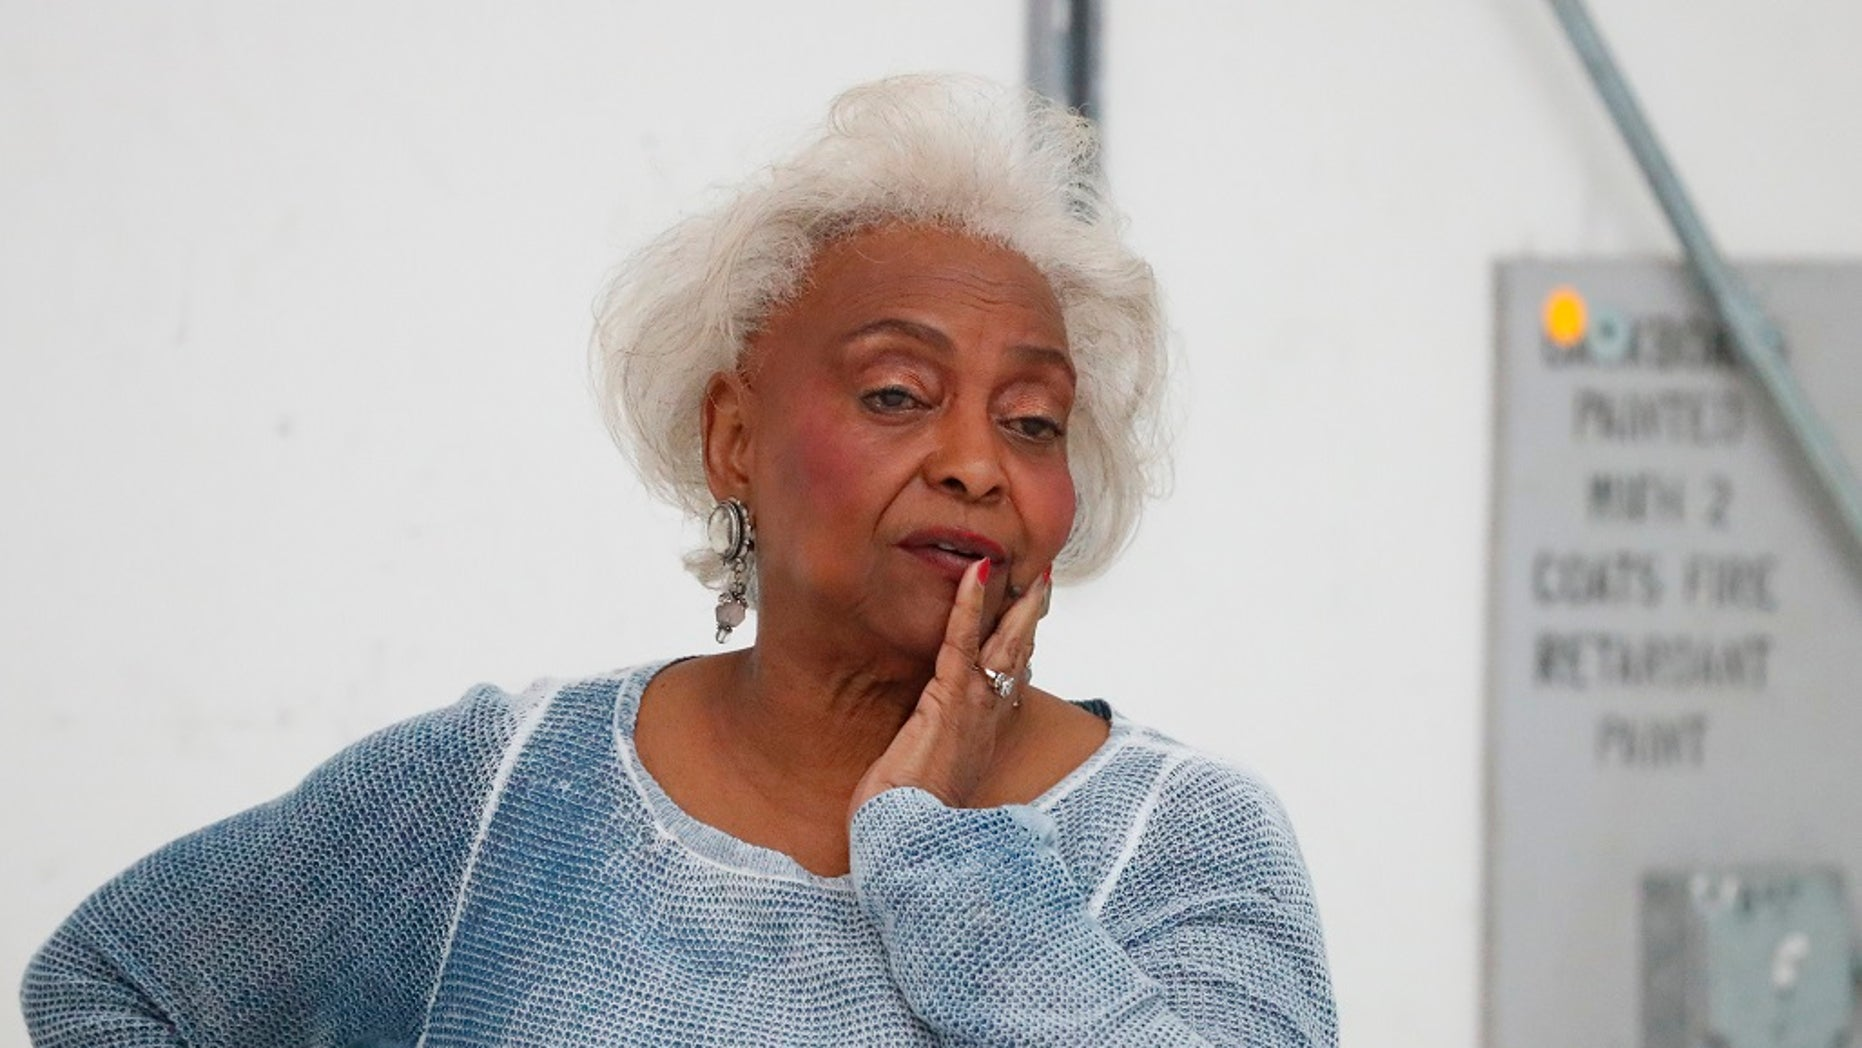 Broward County Supervisor of Elections Brenda Snipes watches workers do a hand recount at the Broward County Supervisor of Elections office.